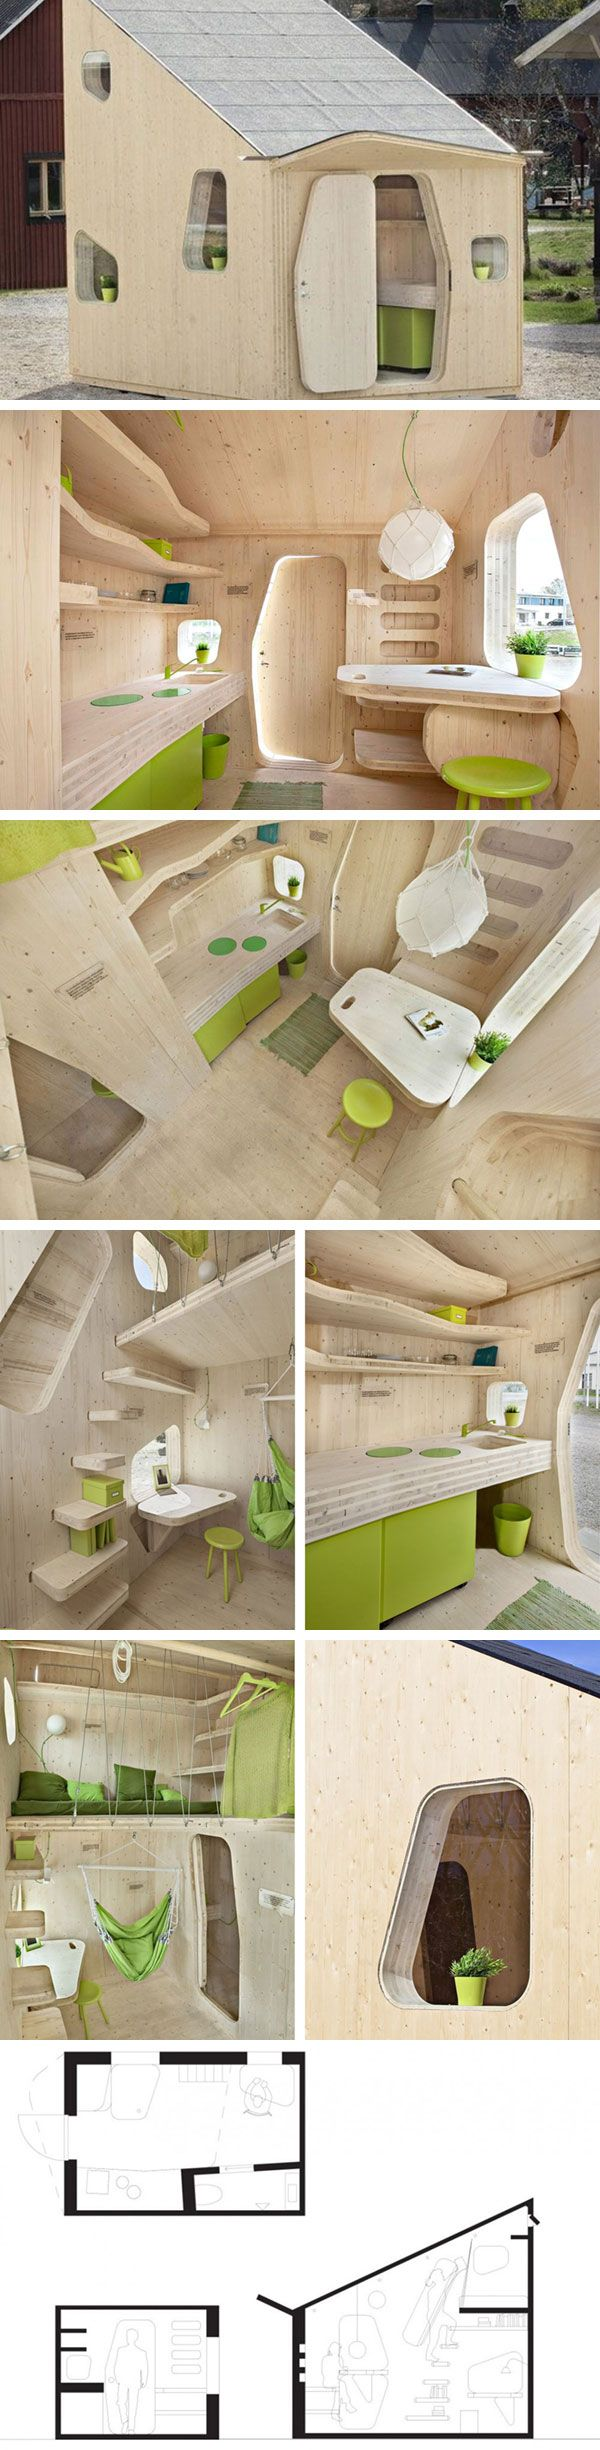 Экологичный домик для студентов от Tengbom Architects #tinyhomesdigest  #tinyhouse #smallhouse #ecohouse #. Student FlatsBackyardsArchitectsStudents